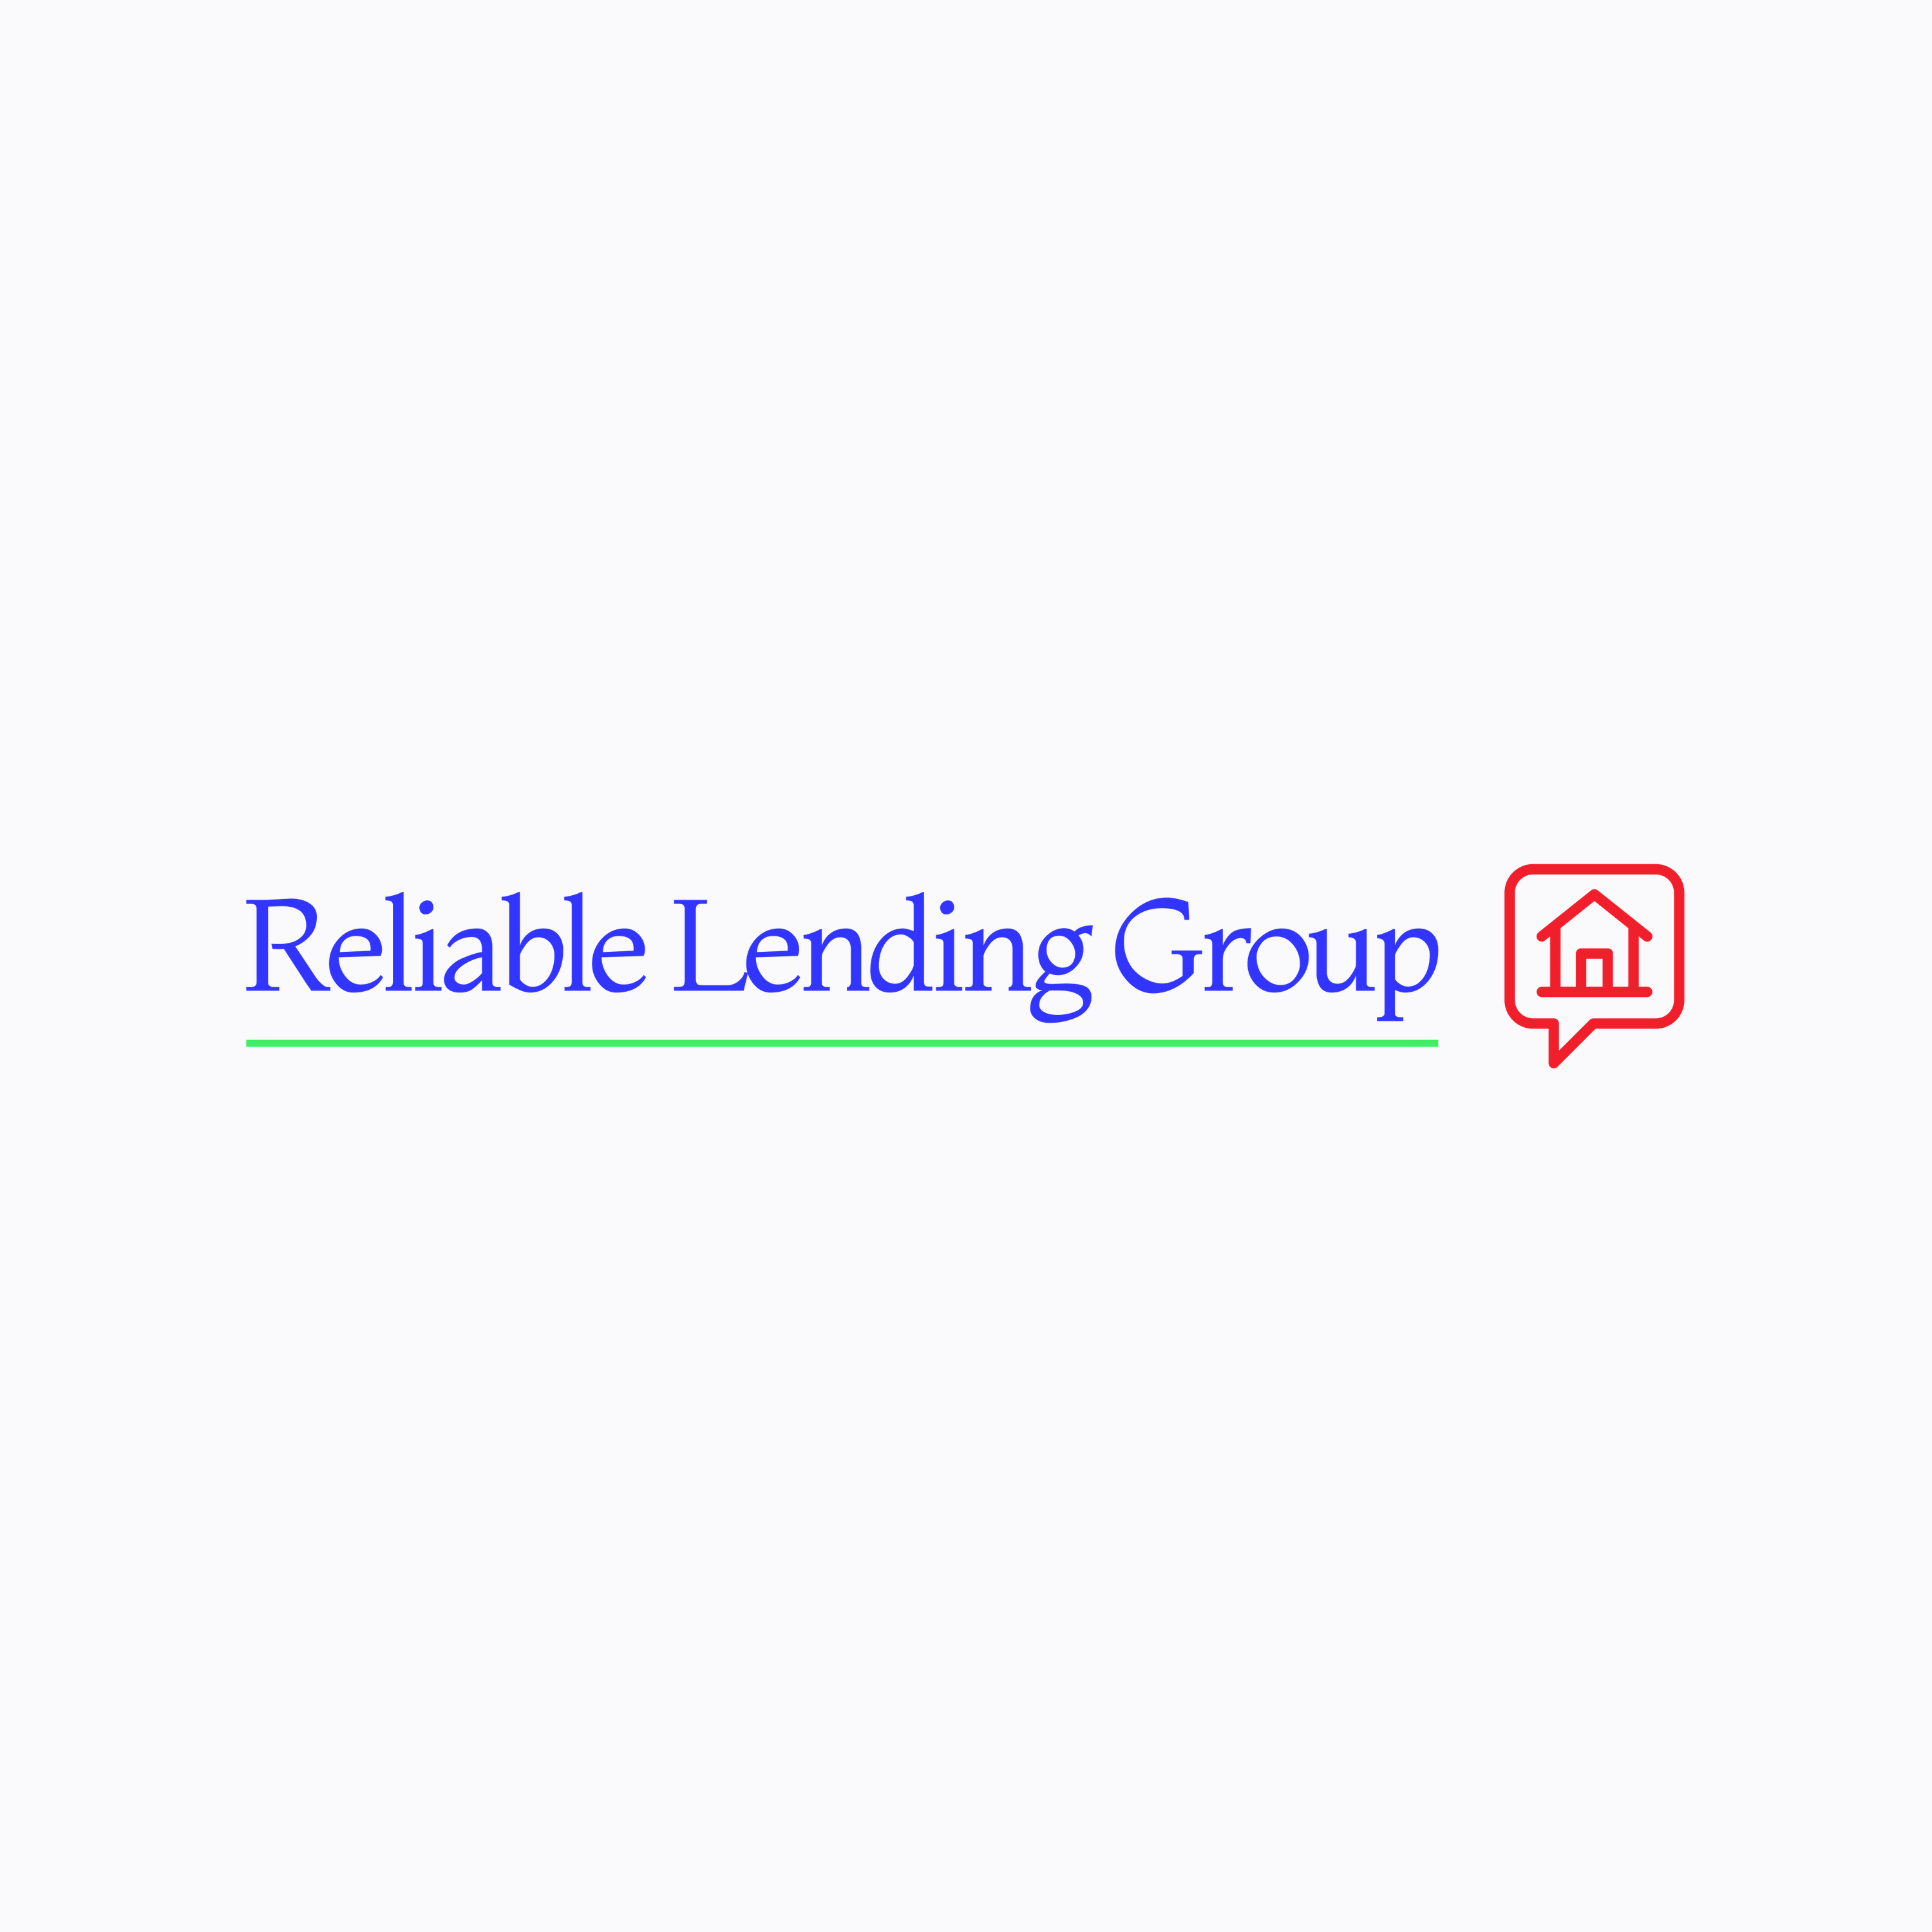 Reliable Lending Group